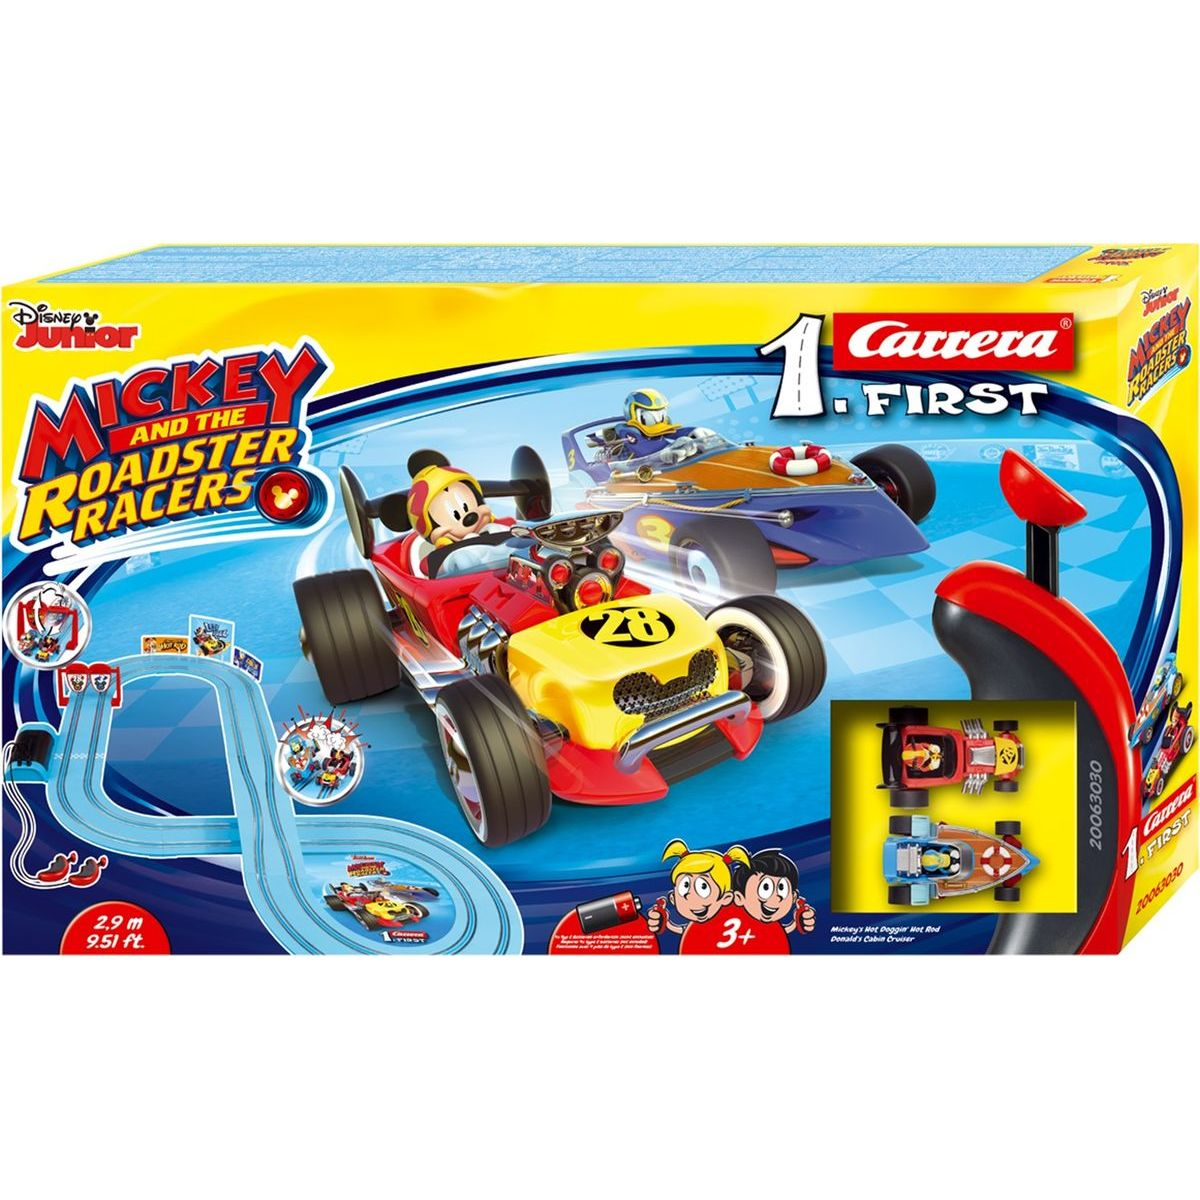 Carrera First Disney autodráha 63030 Mickey Racers